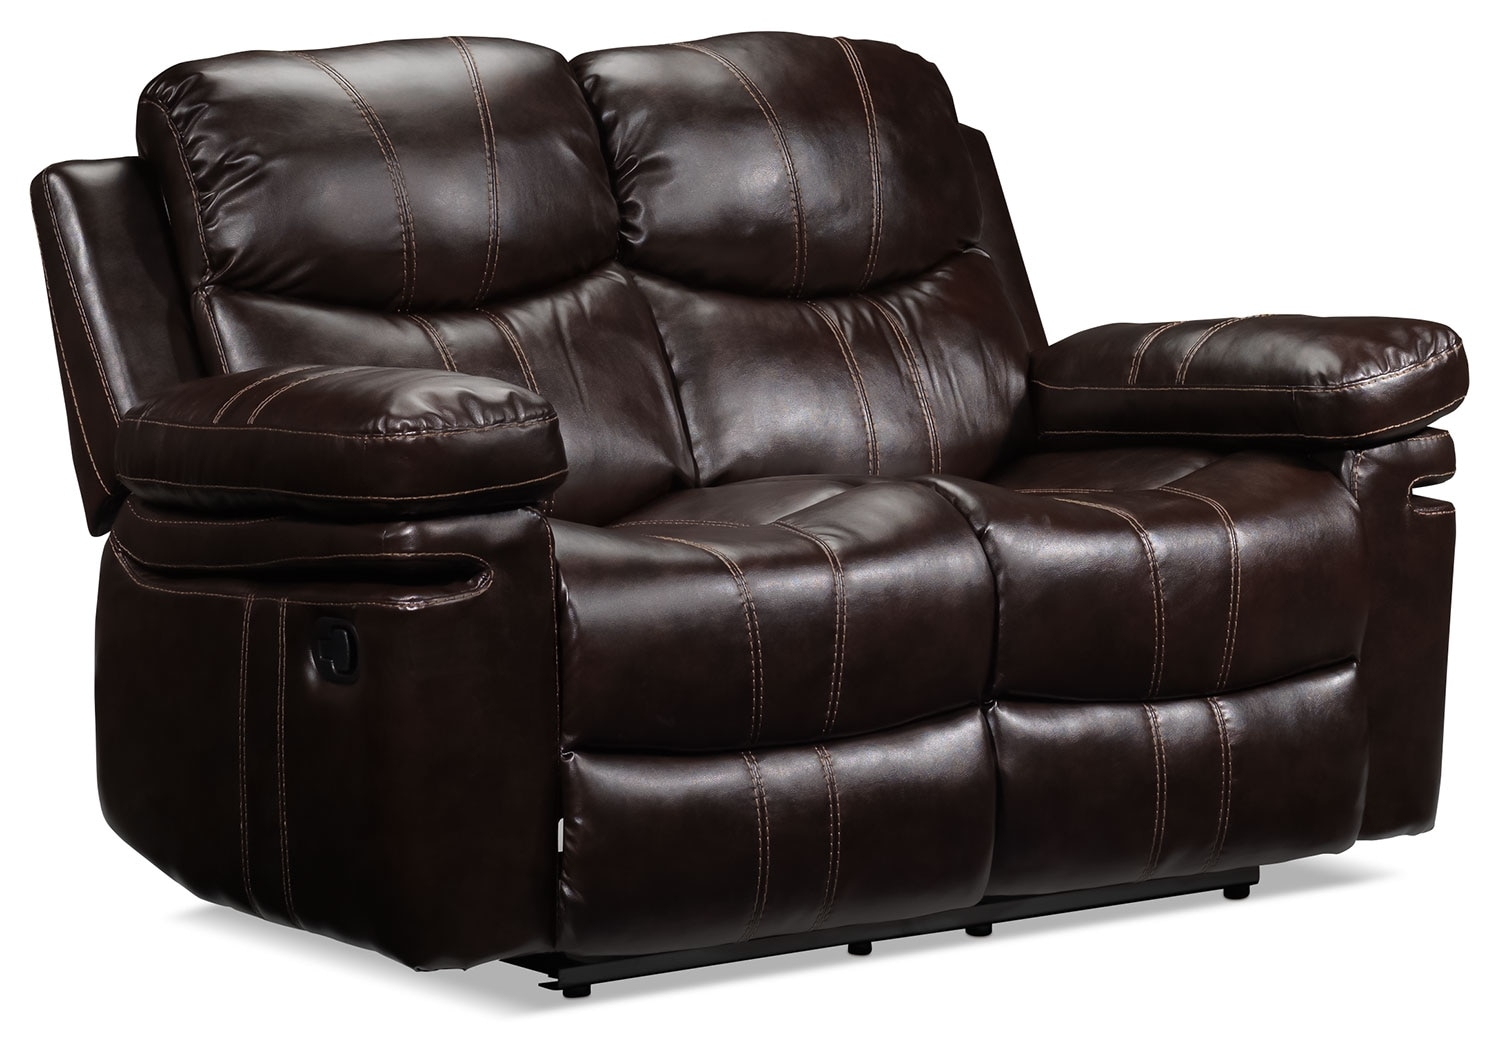 Living Room Furniture - Barcelona Reclining Loveseat - Brown